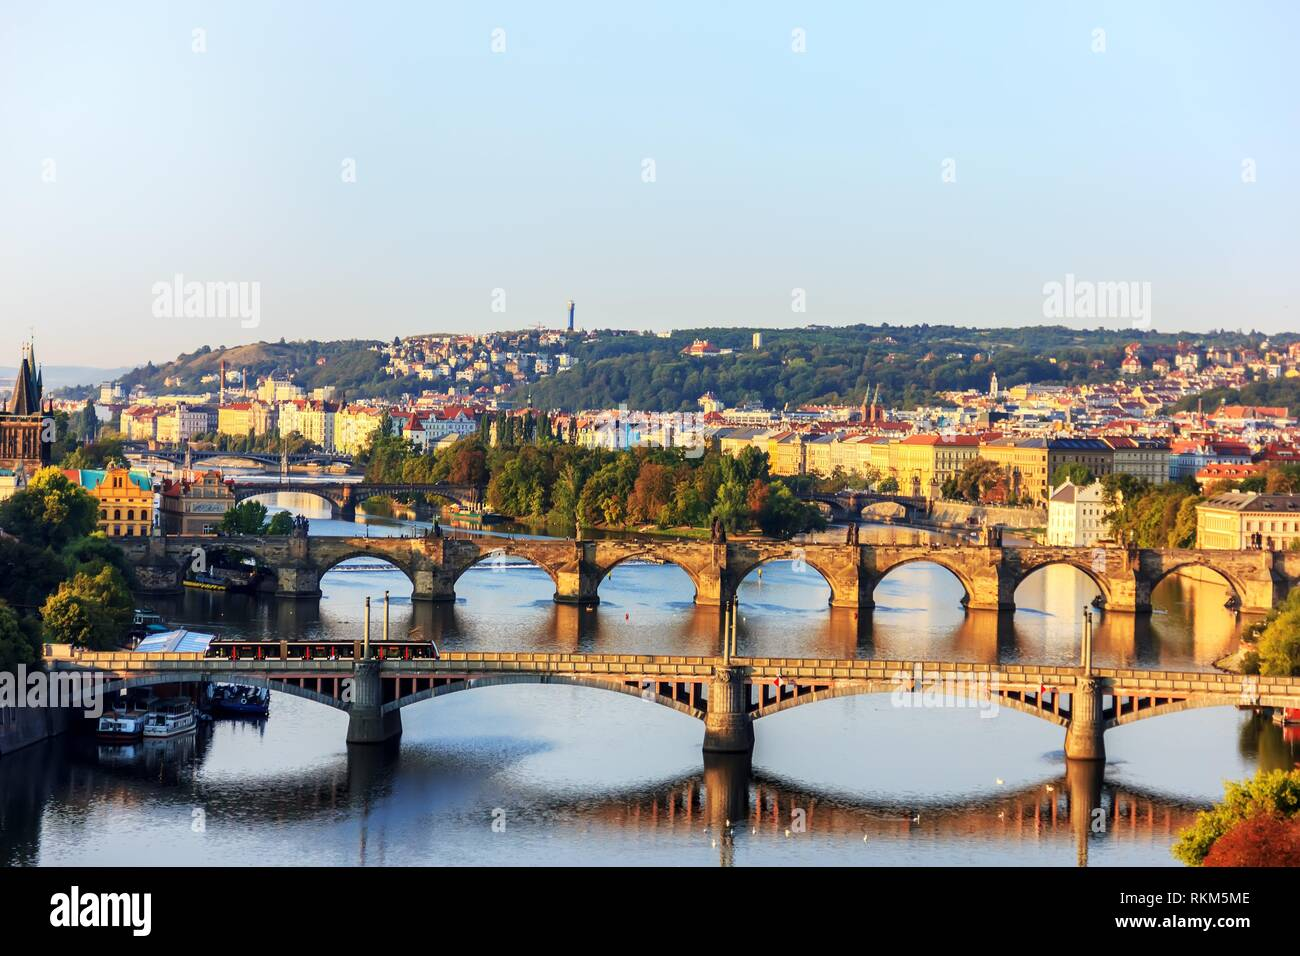 Charles Bridge over the Vltava and other bridges view on the Lesser Town from Prague Metronome. - Stock Image